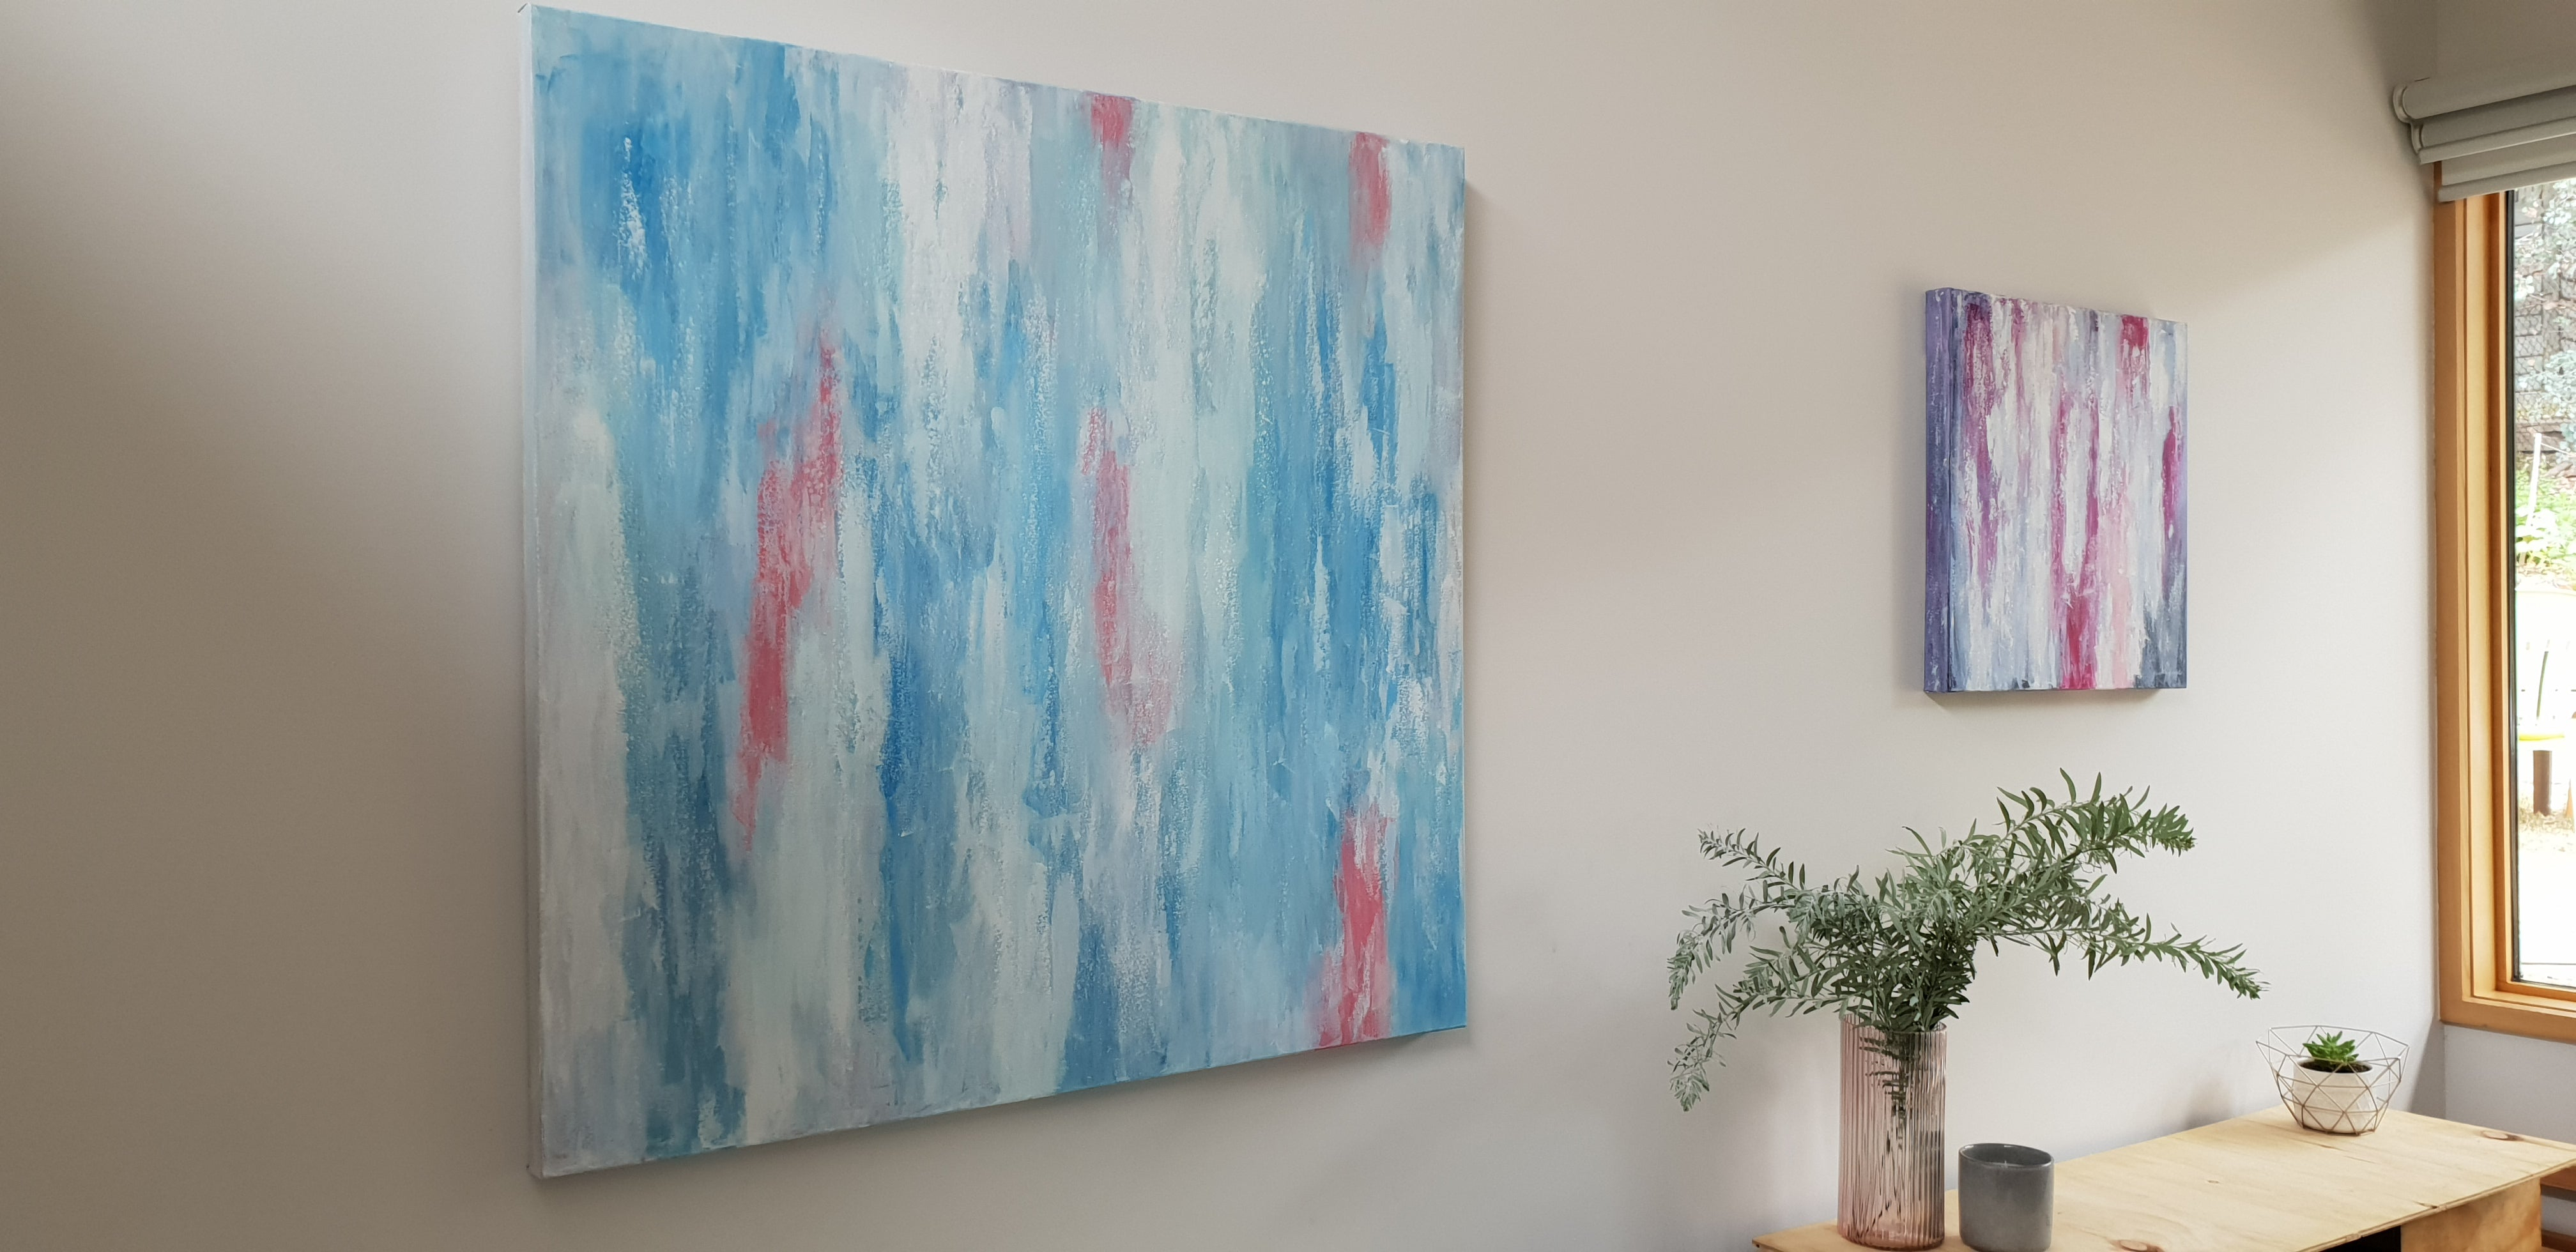 'Moments Like These' Original abstract art work by Jacinta Payne